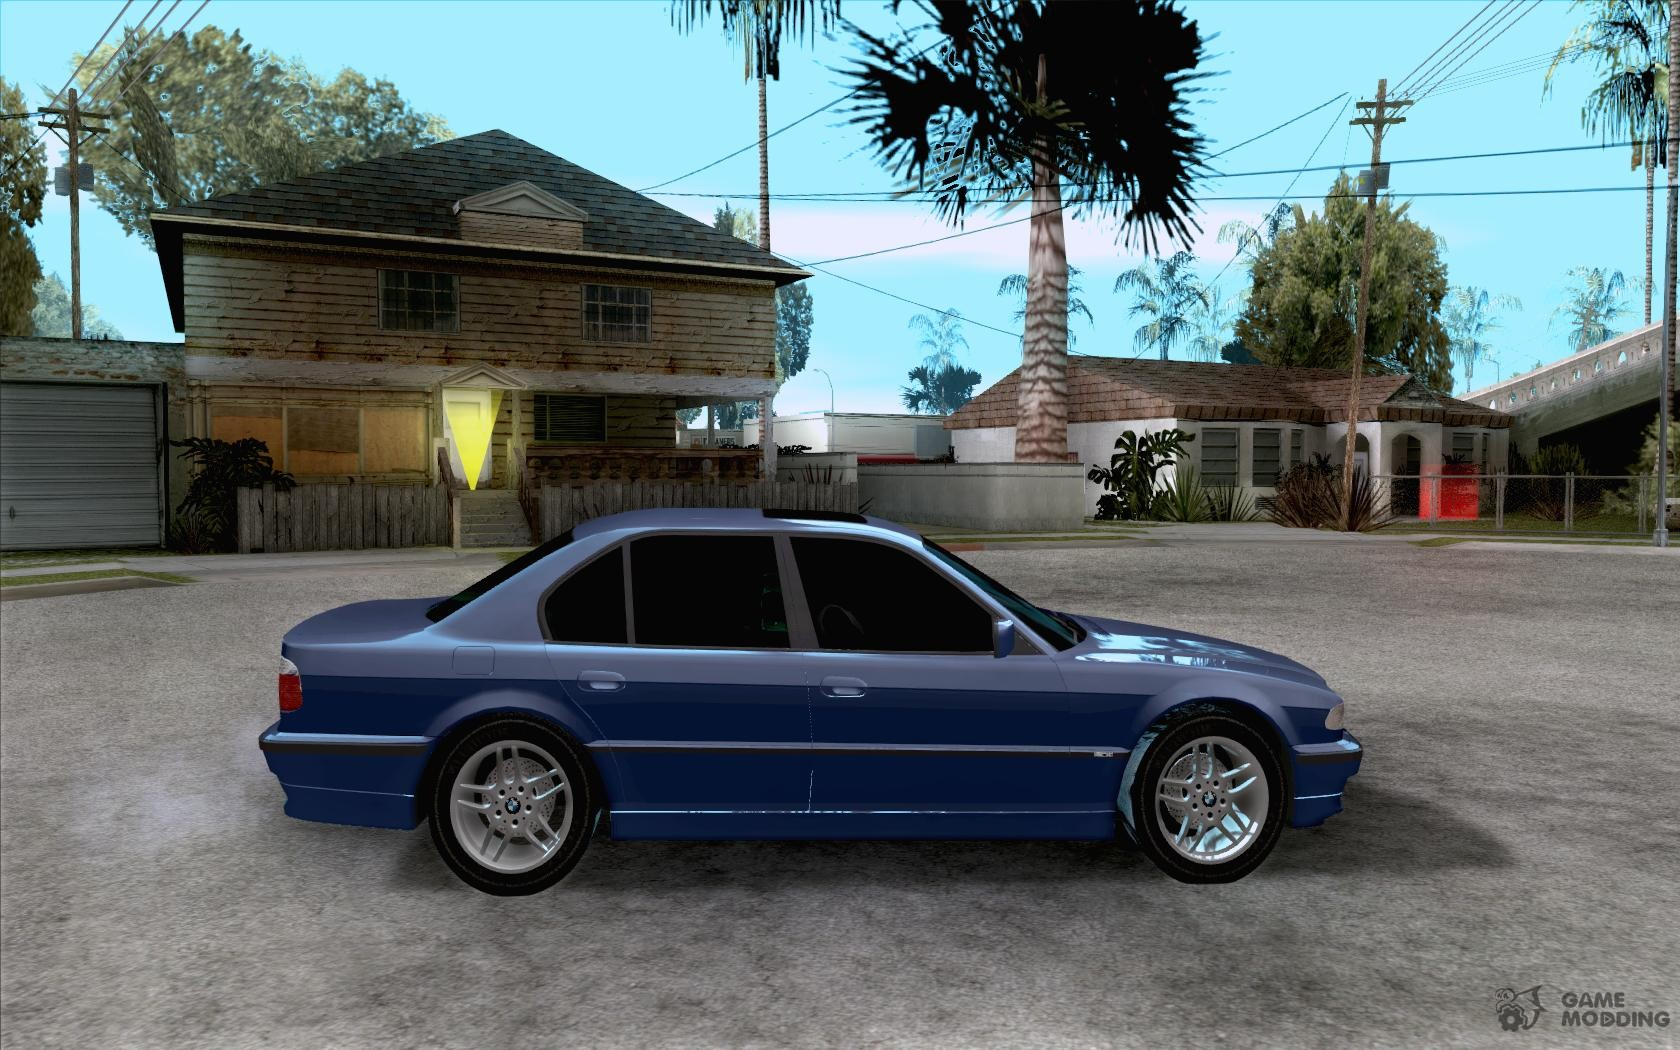 BMW 750i E38 2001 M Packet For GTA San Andreas Inside View